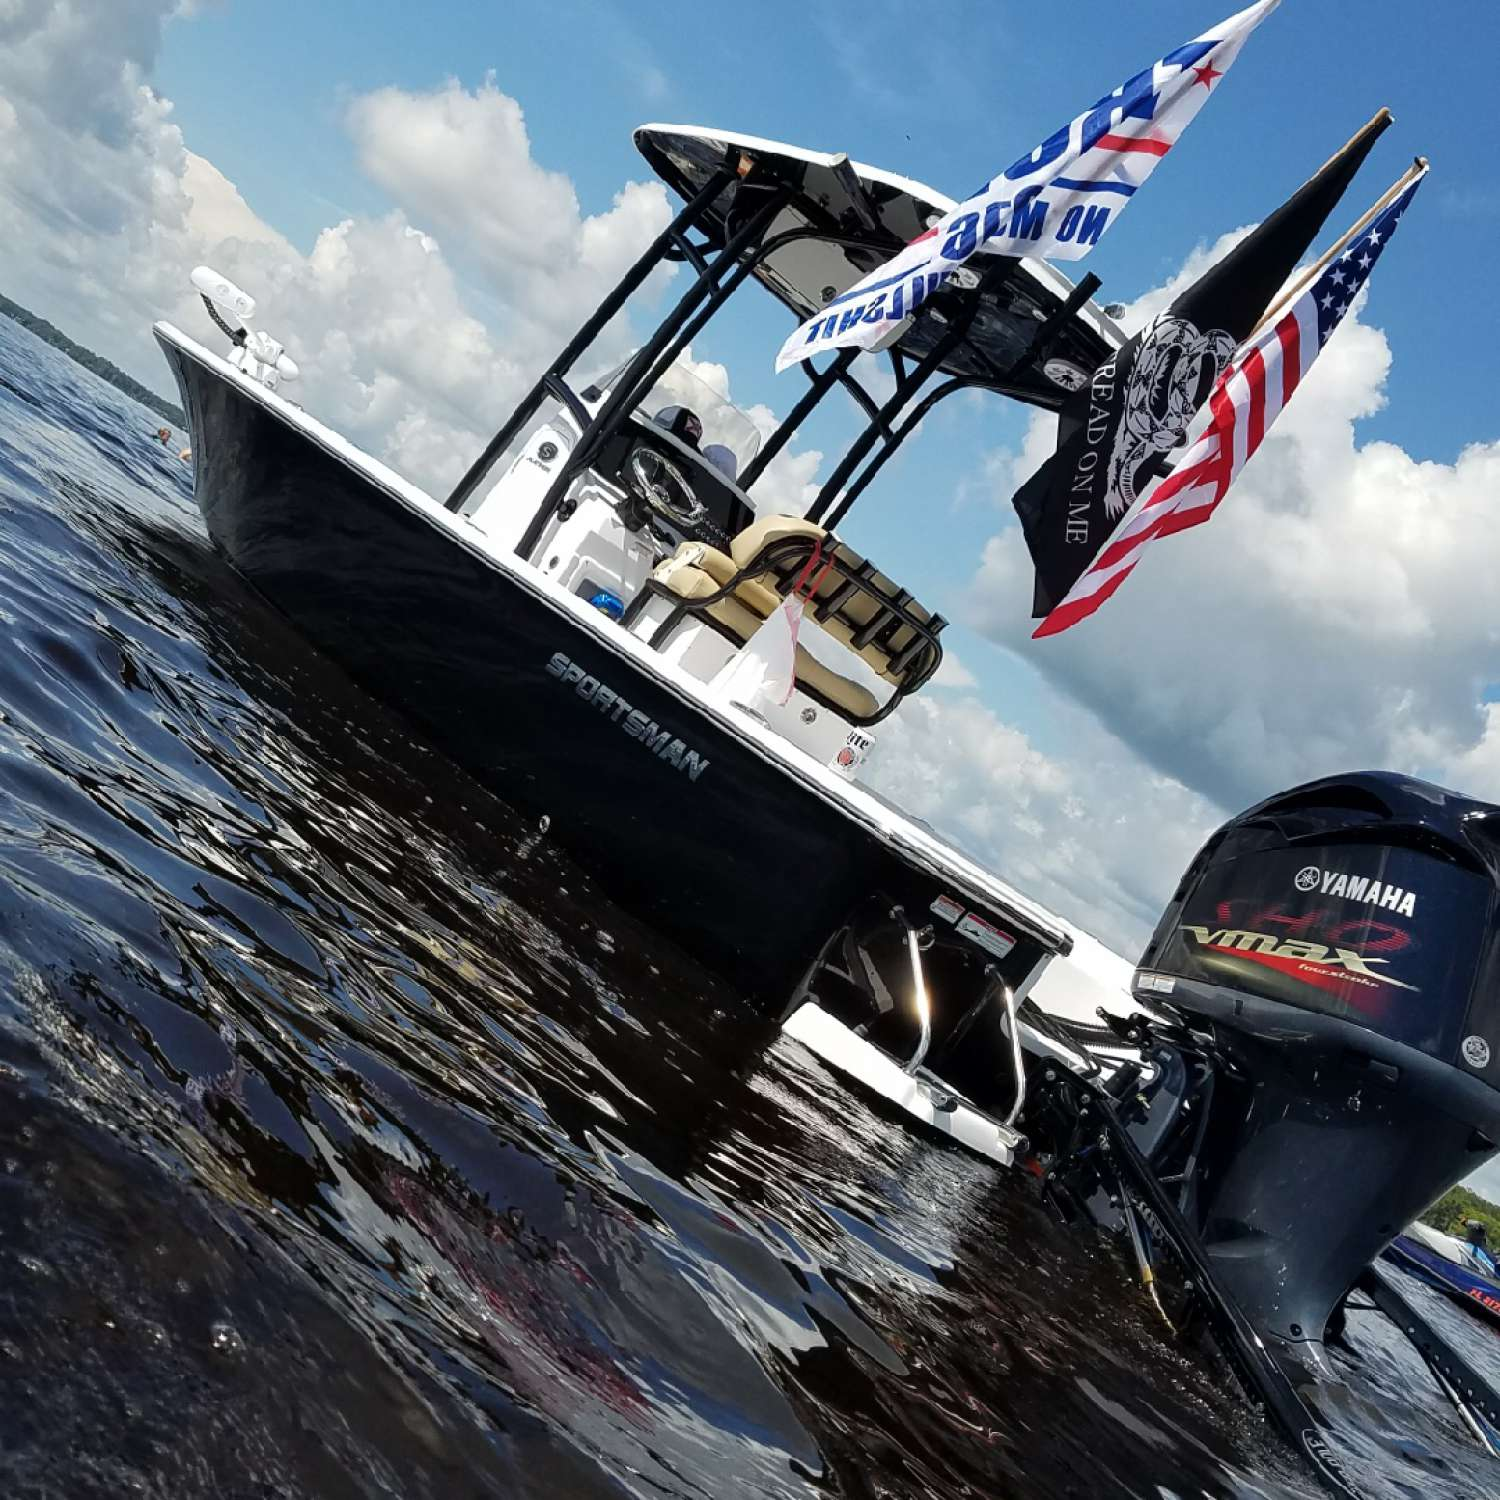 Title: Creek Life - On board their Sportsman Masters 247 Bay Boat - Location: Green Cove Springs, Florida. Participating in the Photo Contest #SportsmanJuly2017